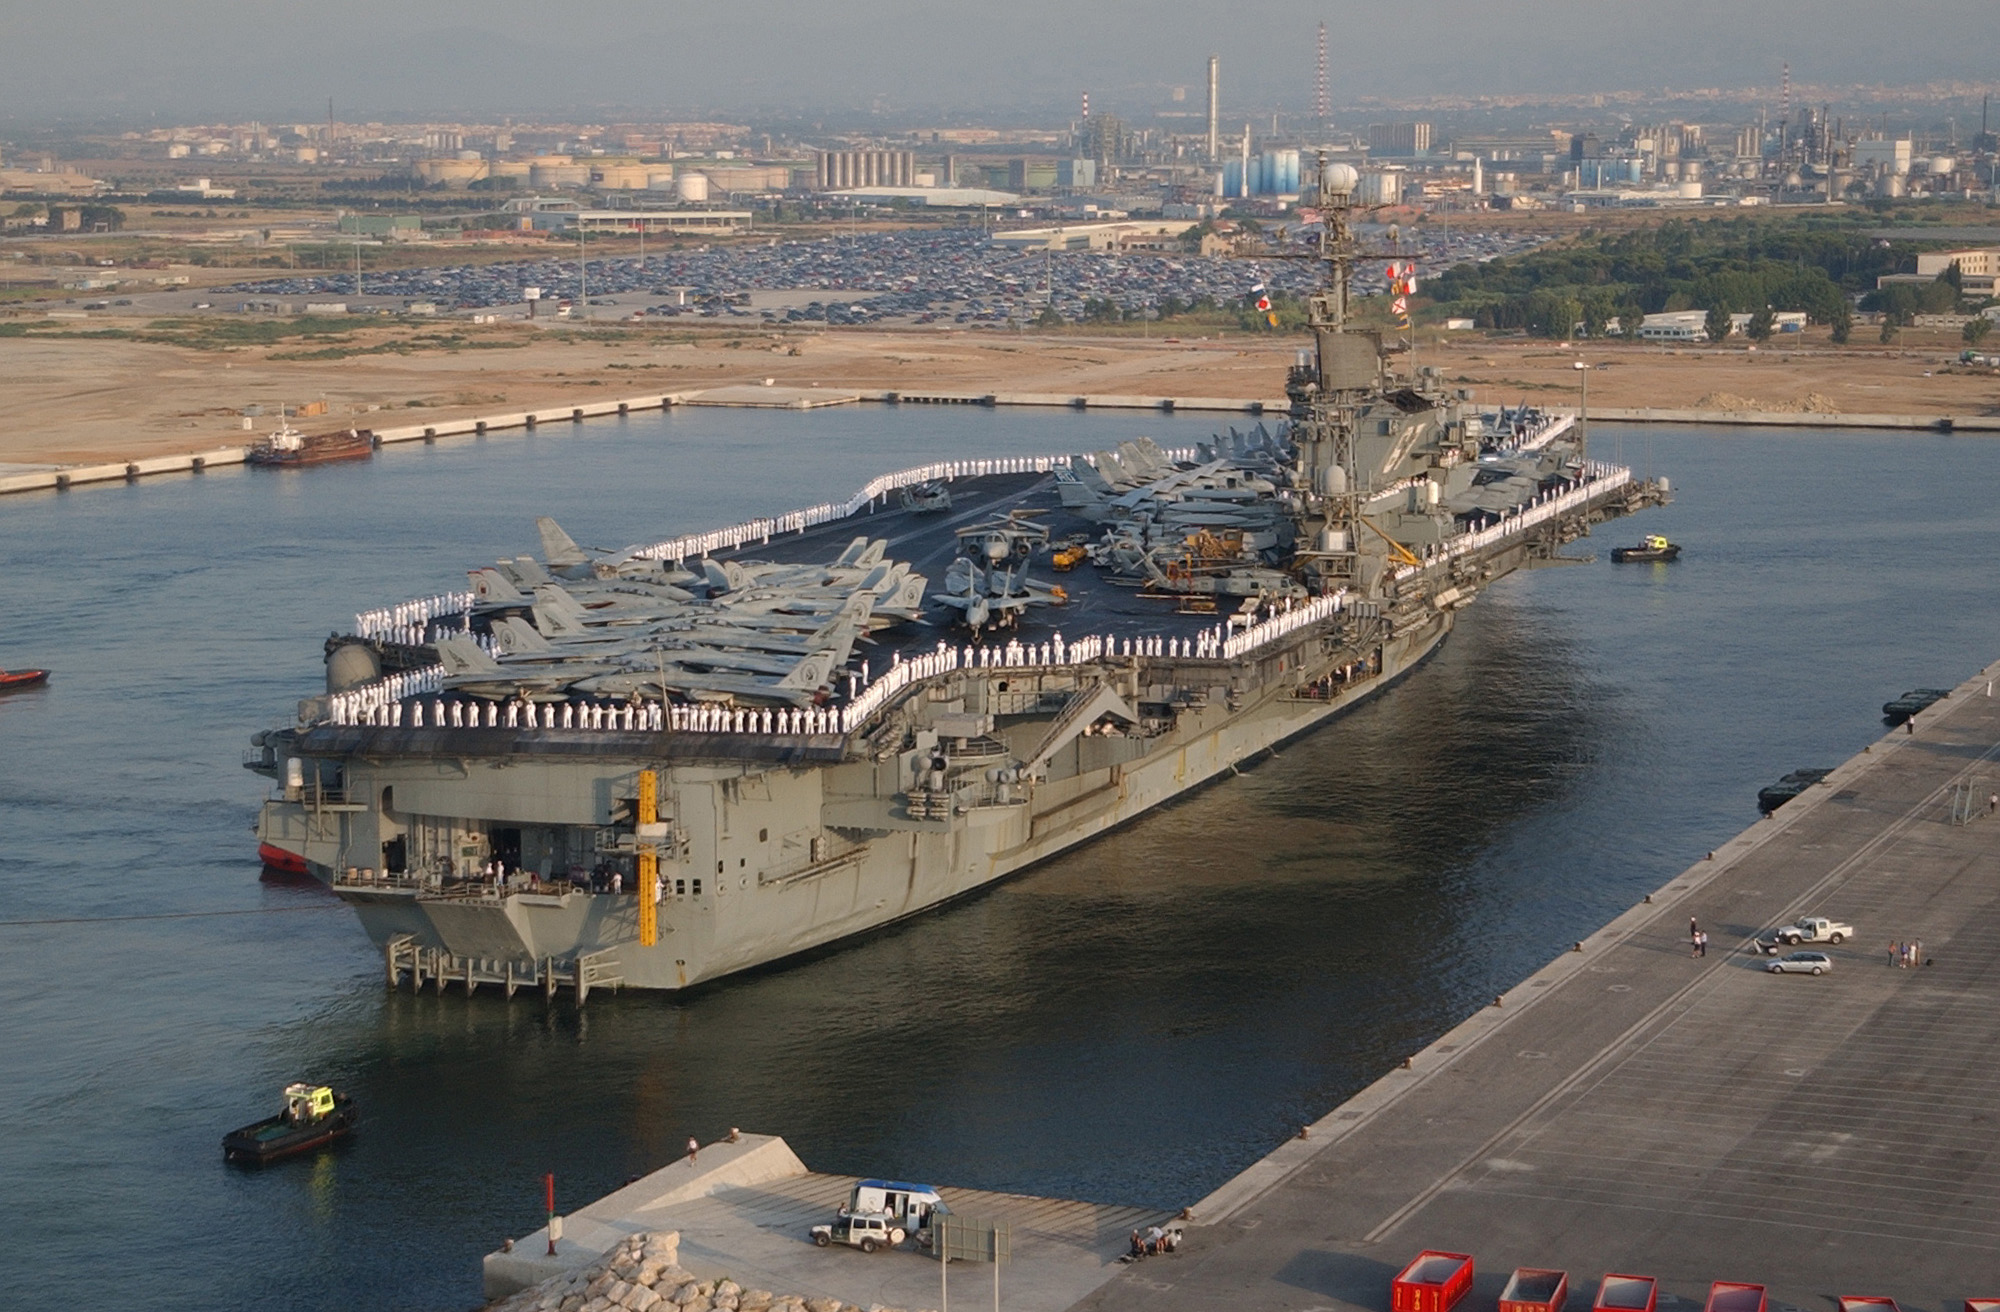 USS John Fitzerald Kennedy entering Tarragona Harbour in 2002. The city could be an alternative to Rota as a home port for the US Navy missile defence destroyers in the Mediterranean. https://www.flickr.com/photos/imcomkorea/3047221282/in/photolist-5DgNHY